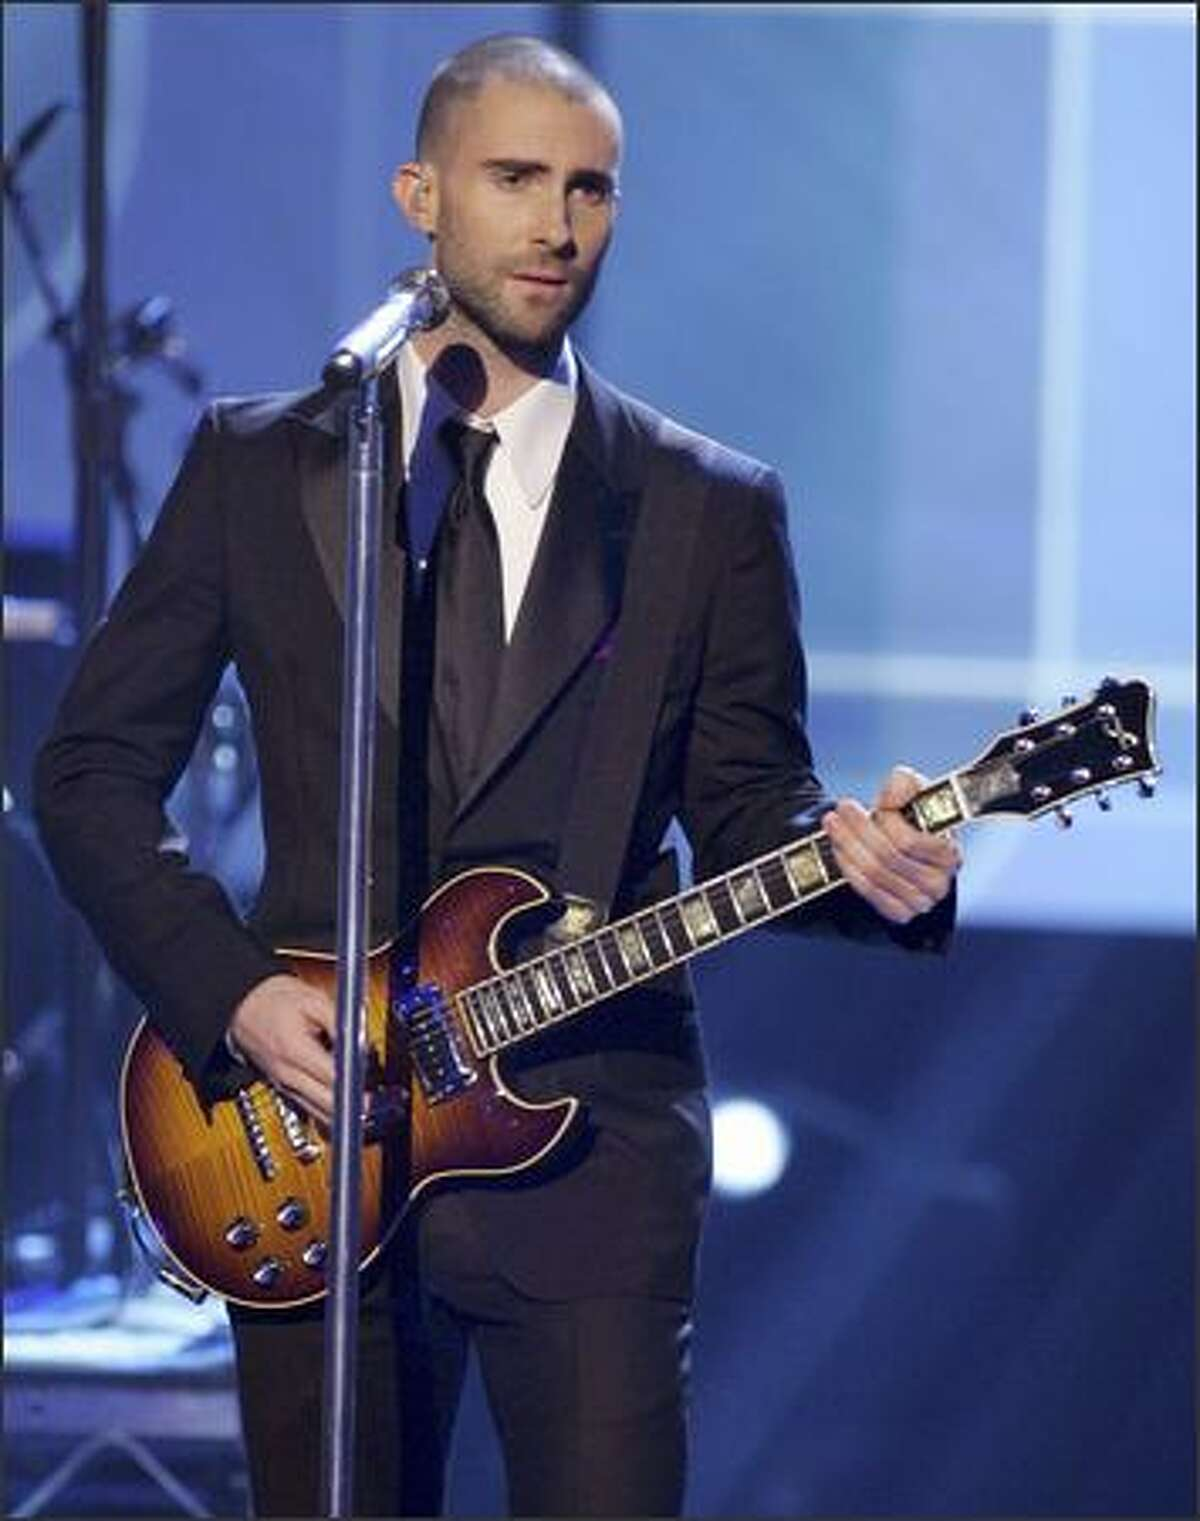 Adam Levine of Maroon 5 perfroms during the 2007 American Music Awards.